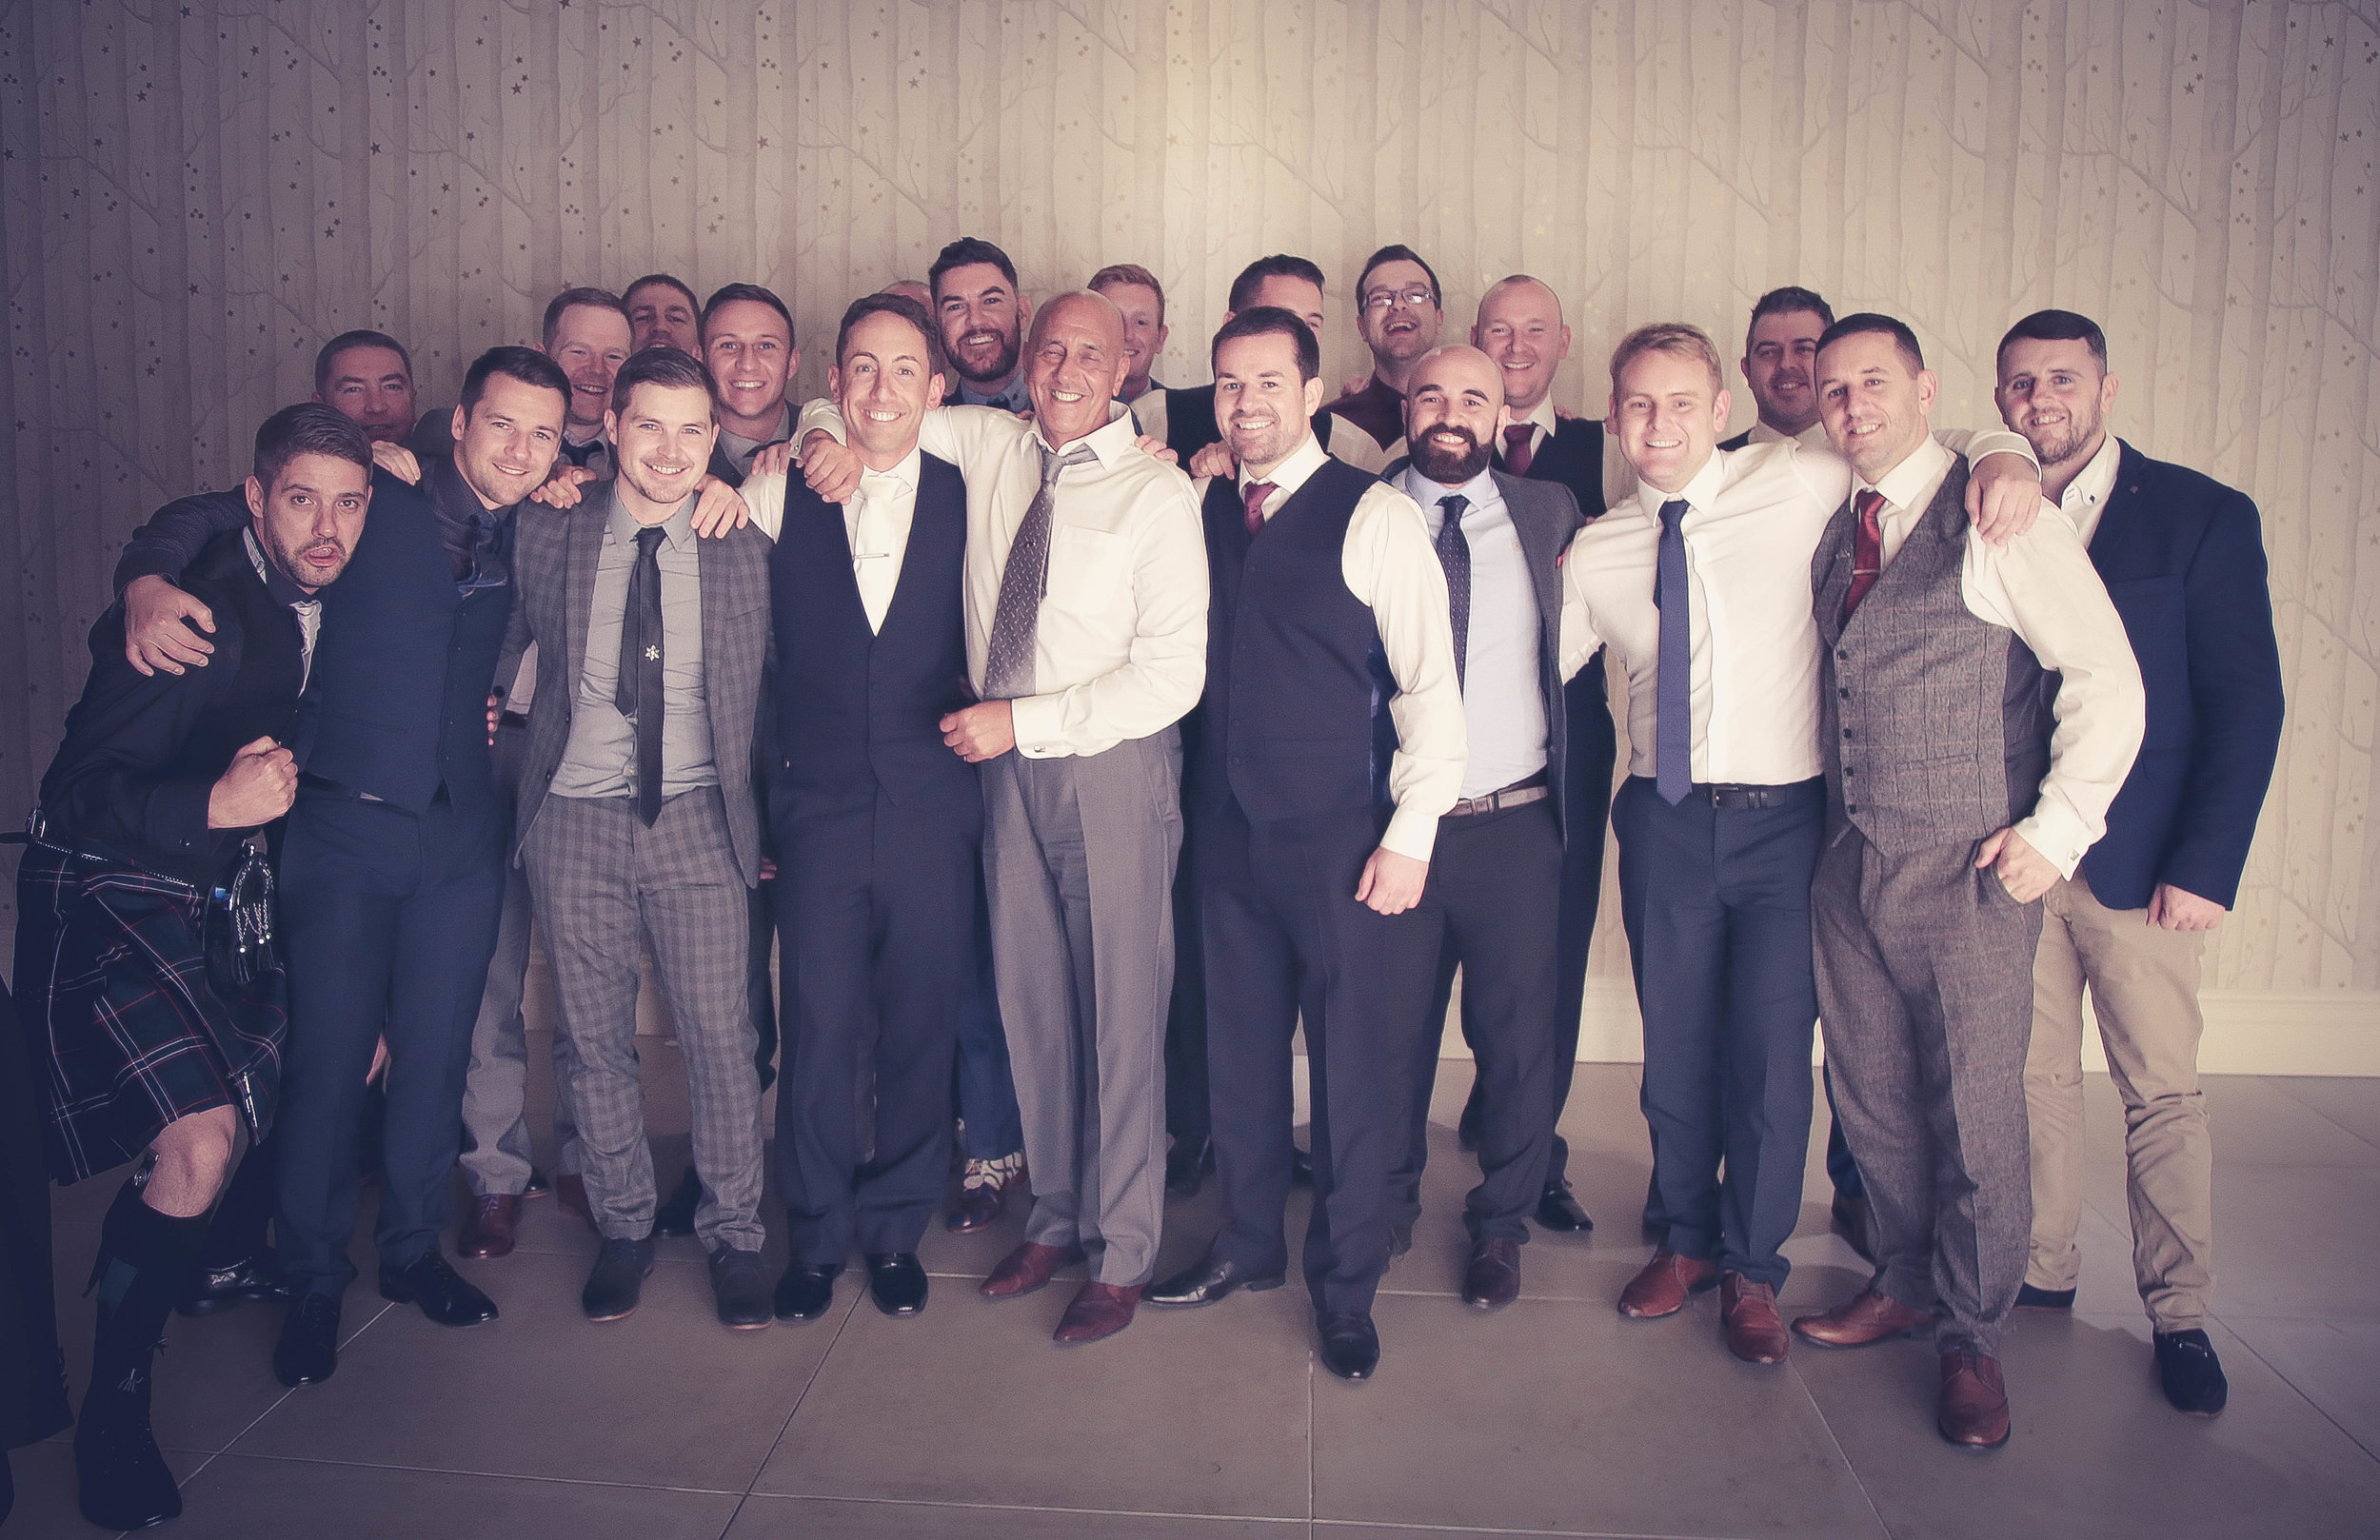 Weddings at the shankly hotel liverpool-151.jpg